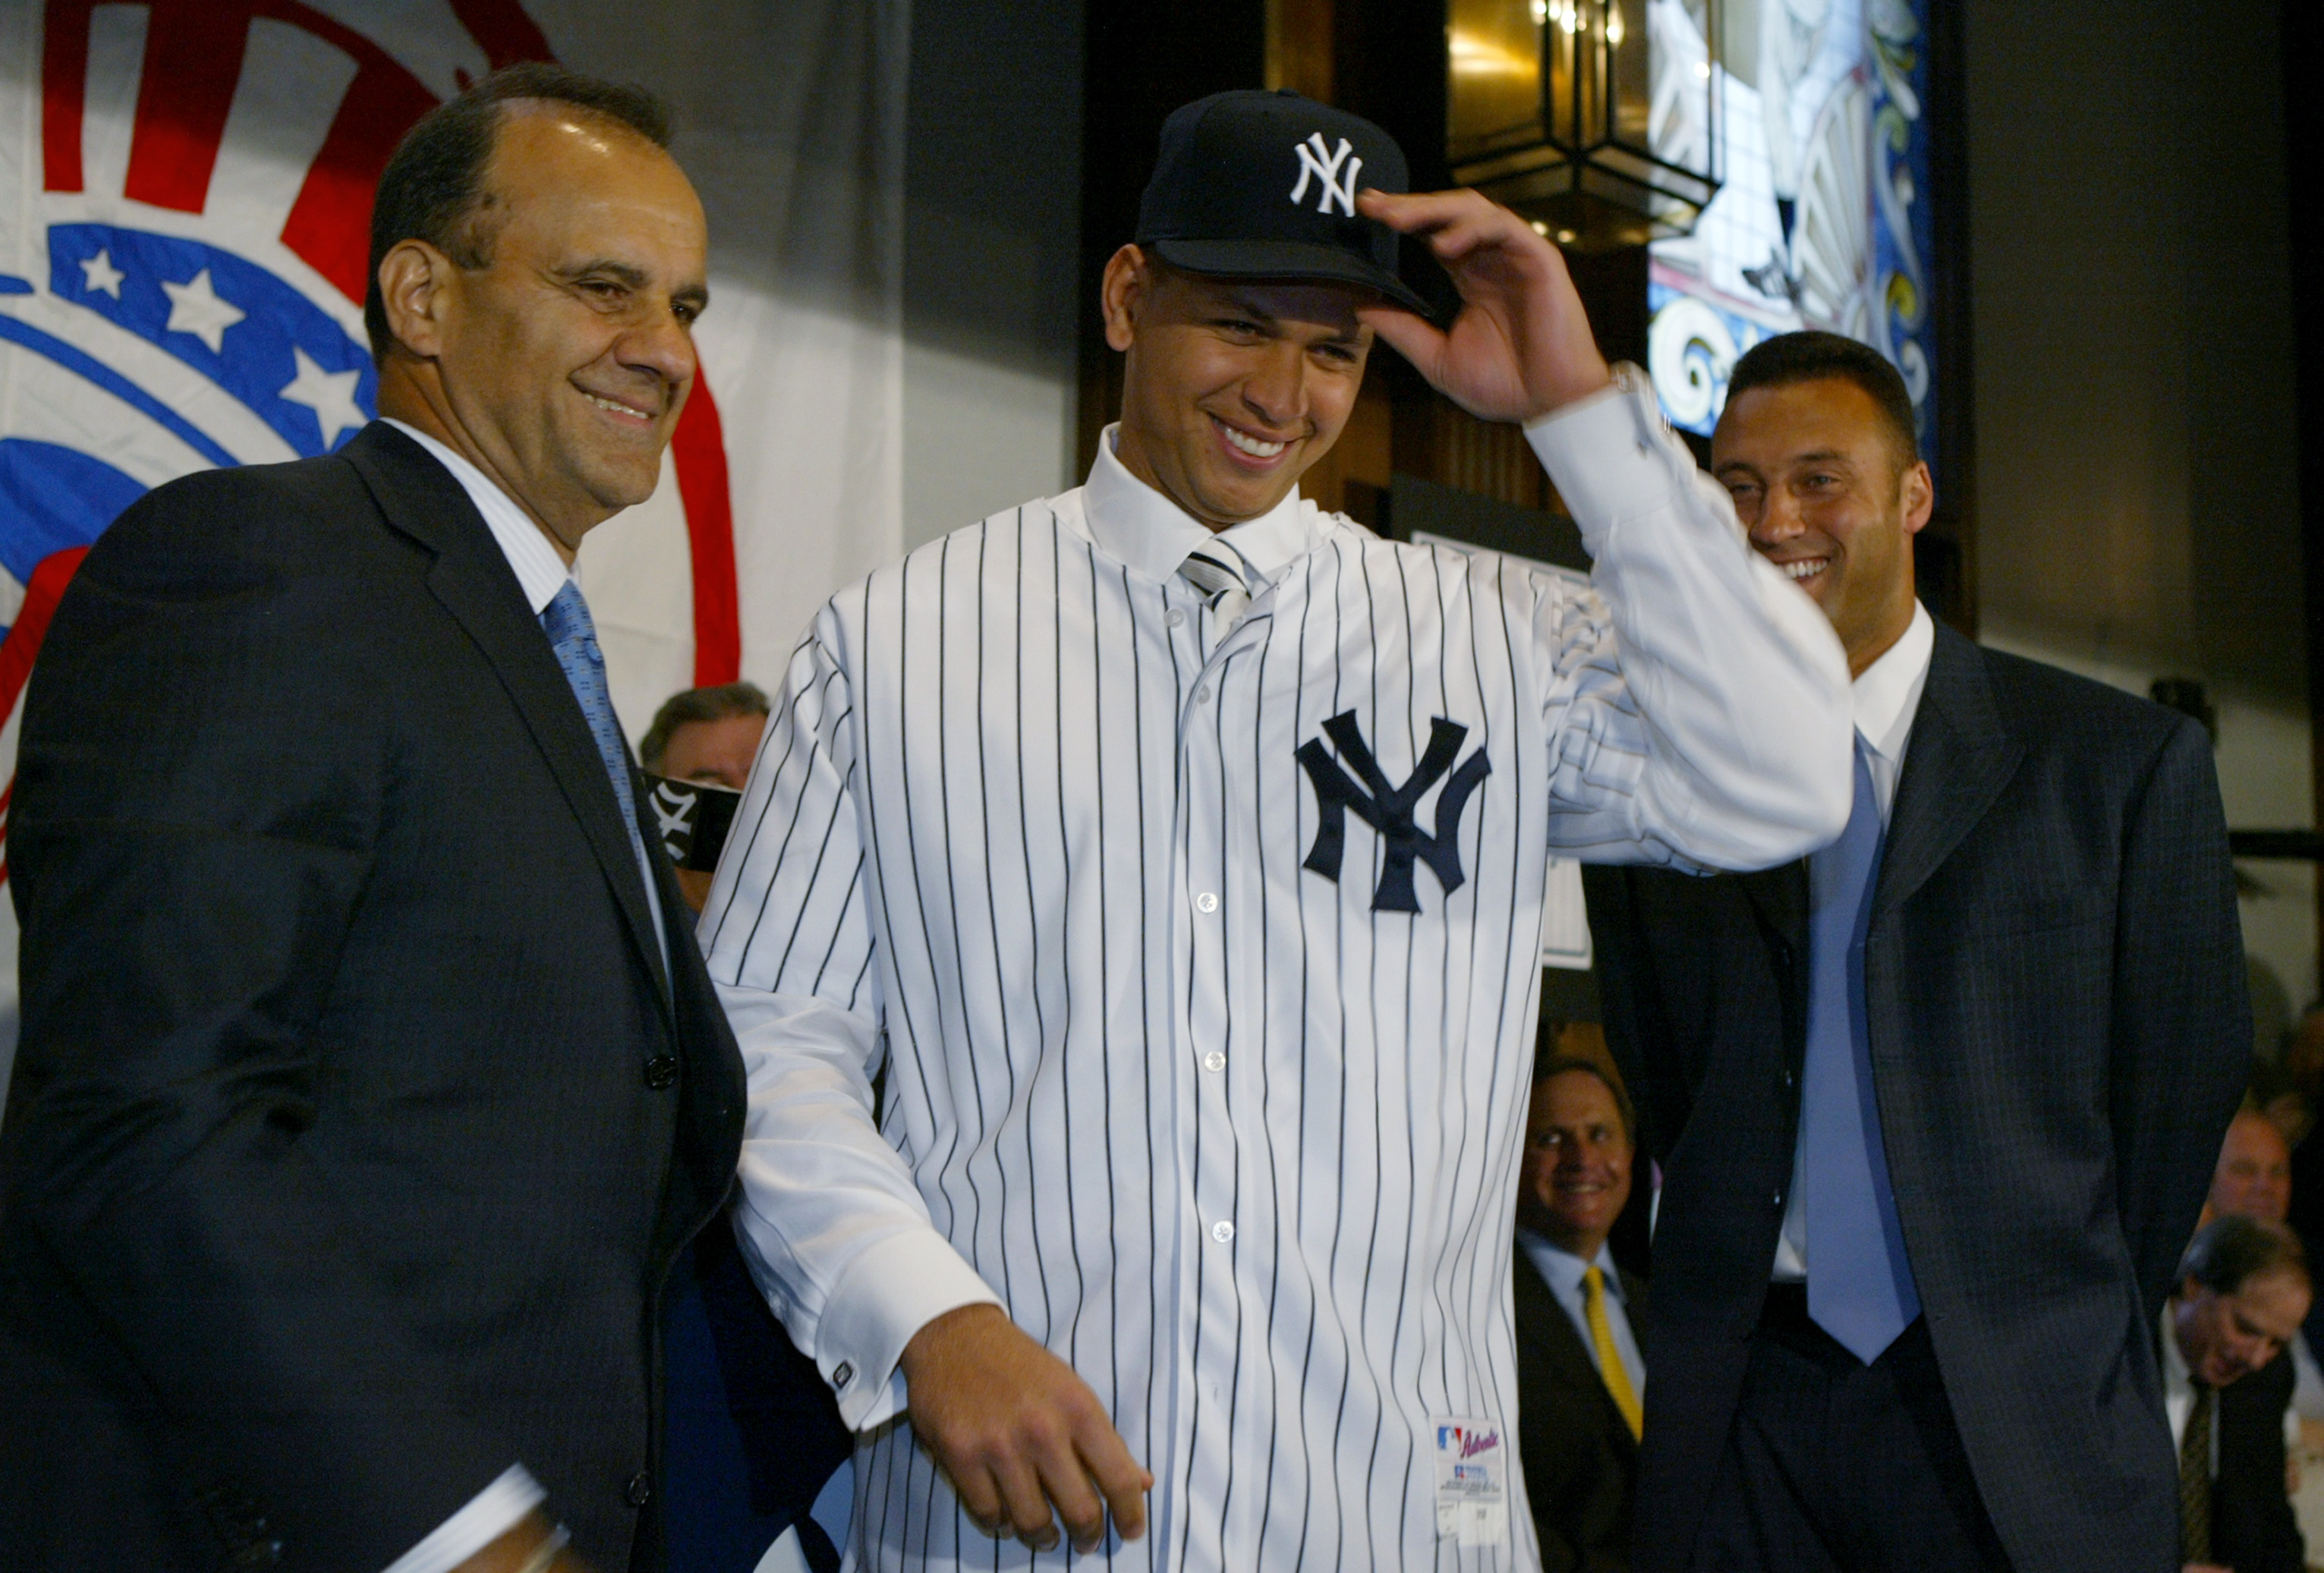 NEW YORK - FEBRUARY 17:  Alex Rodriguez is introduced as a New York Yankee by manager Joe Torre at a press conference on February 17, 2004 at Yankee Stadium in the Bronx, New York.  (Photo by Ezra Shaw/Getty Images)